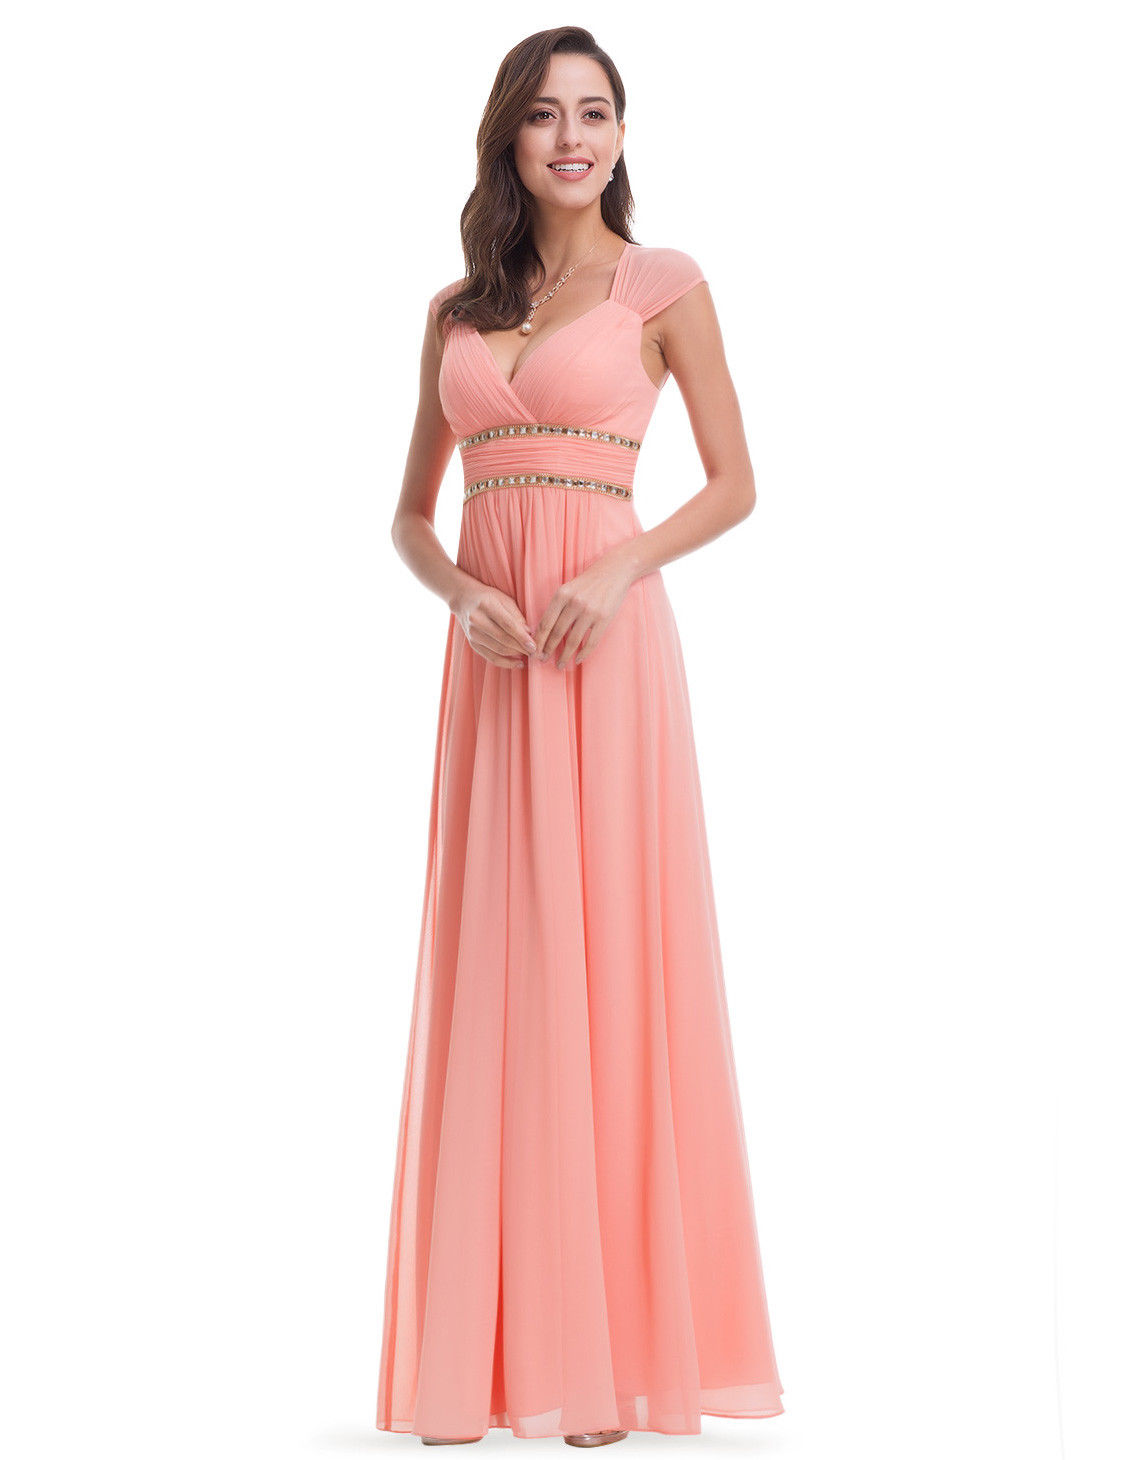 2a267fc603f3 Ever-Pretty Long Bead Bridesmaid Dresses Formal Backless Wedding Gown 08697